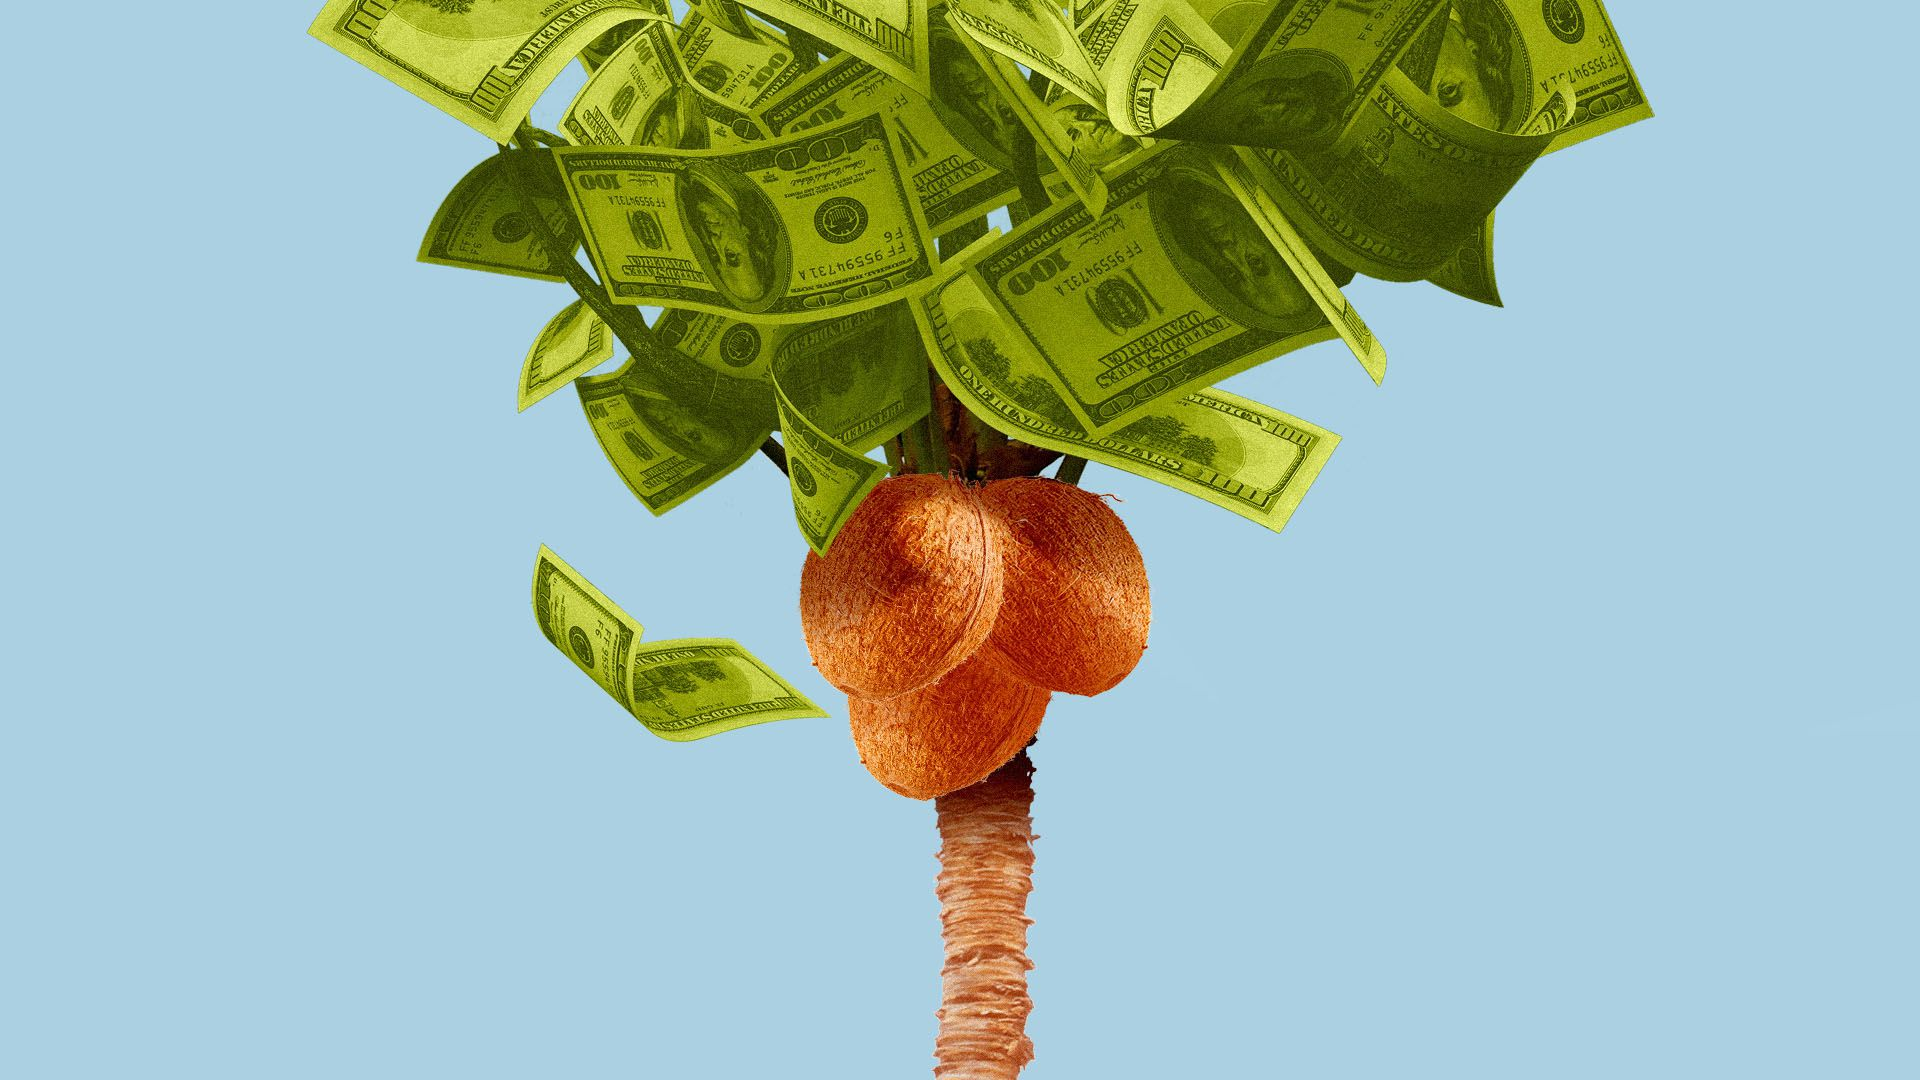 Illustration of a coconut tree with money for the leaves.